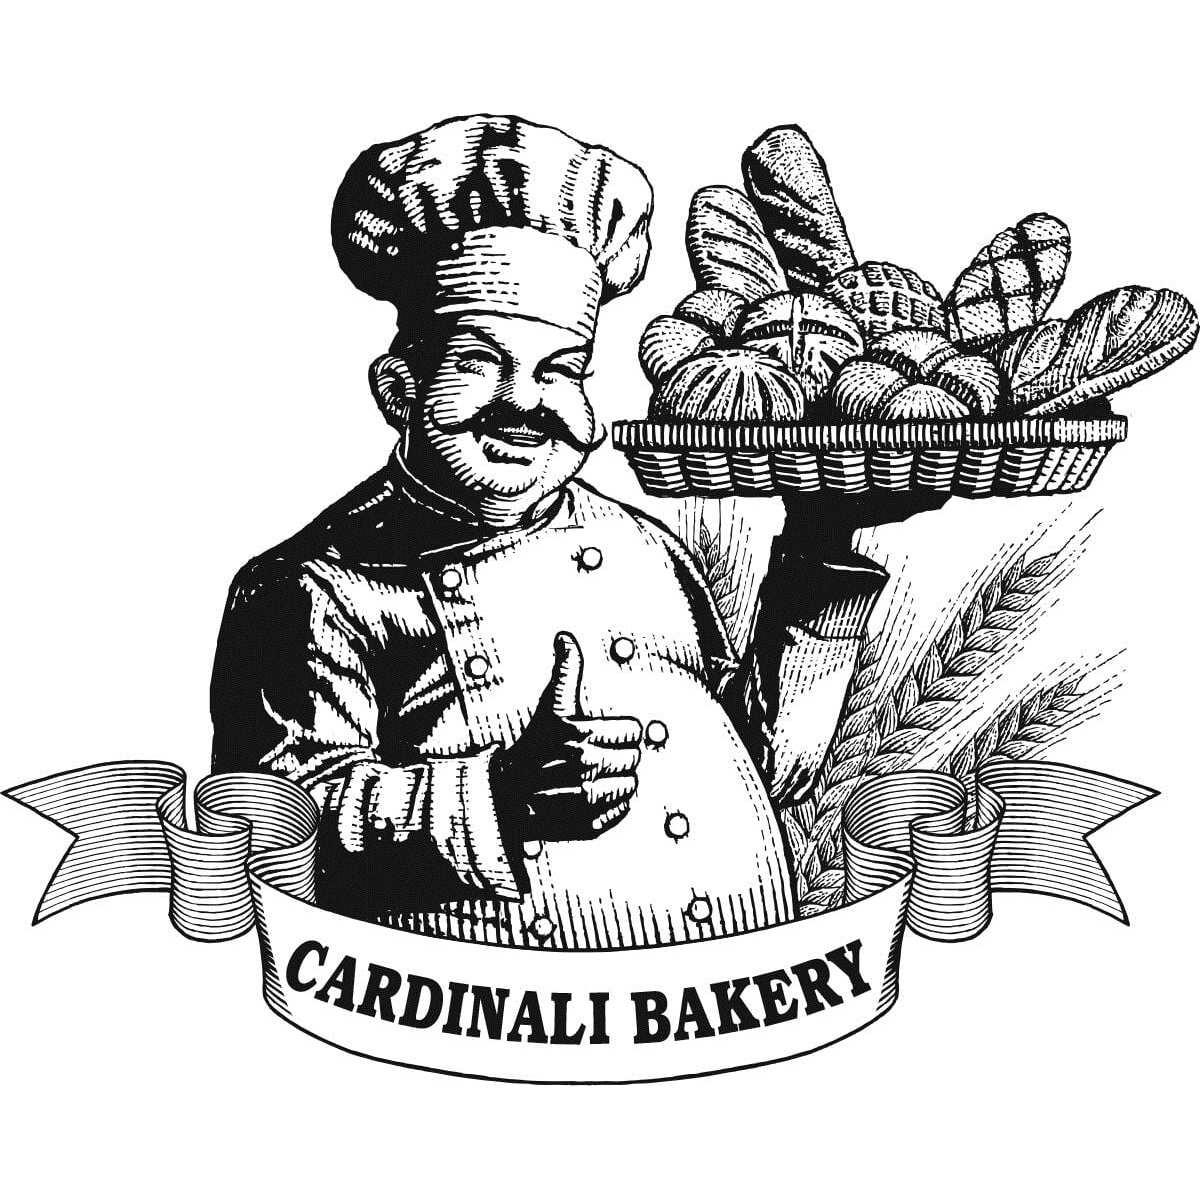 Caterer in NY Carle Place 11514 Cardinali Bakery 465 Westbury Avenue  (516)997-8950